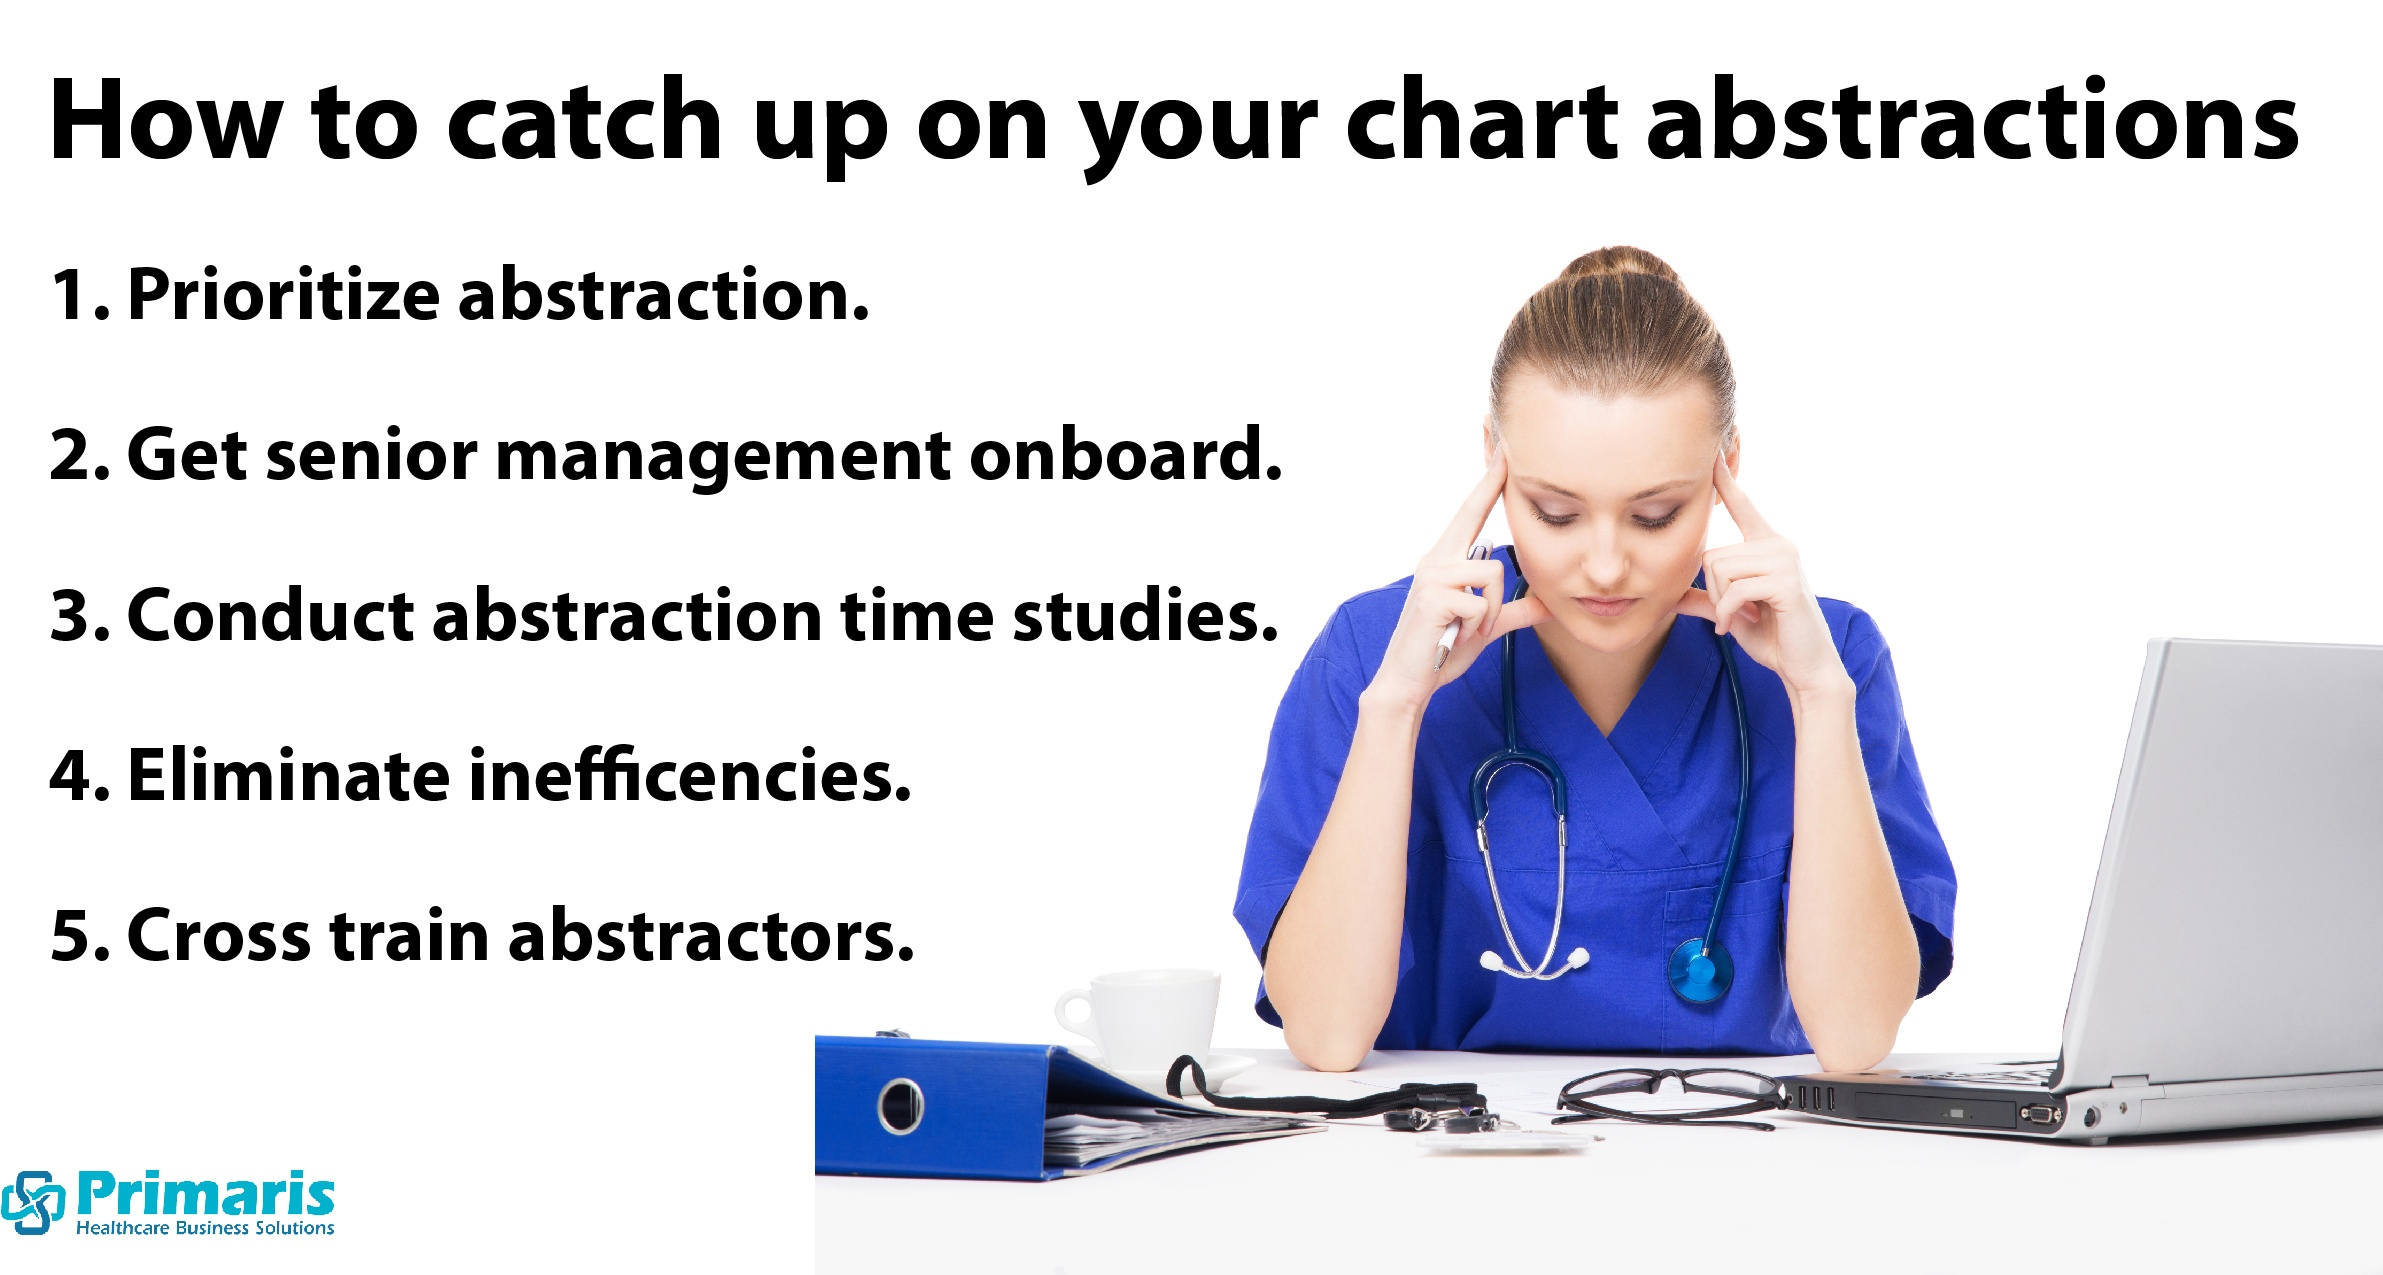 Here are five steps for catching up on chart abstractions.